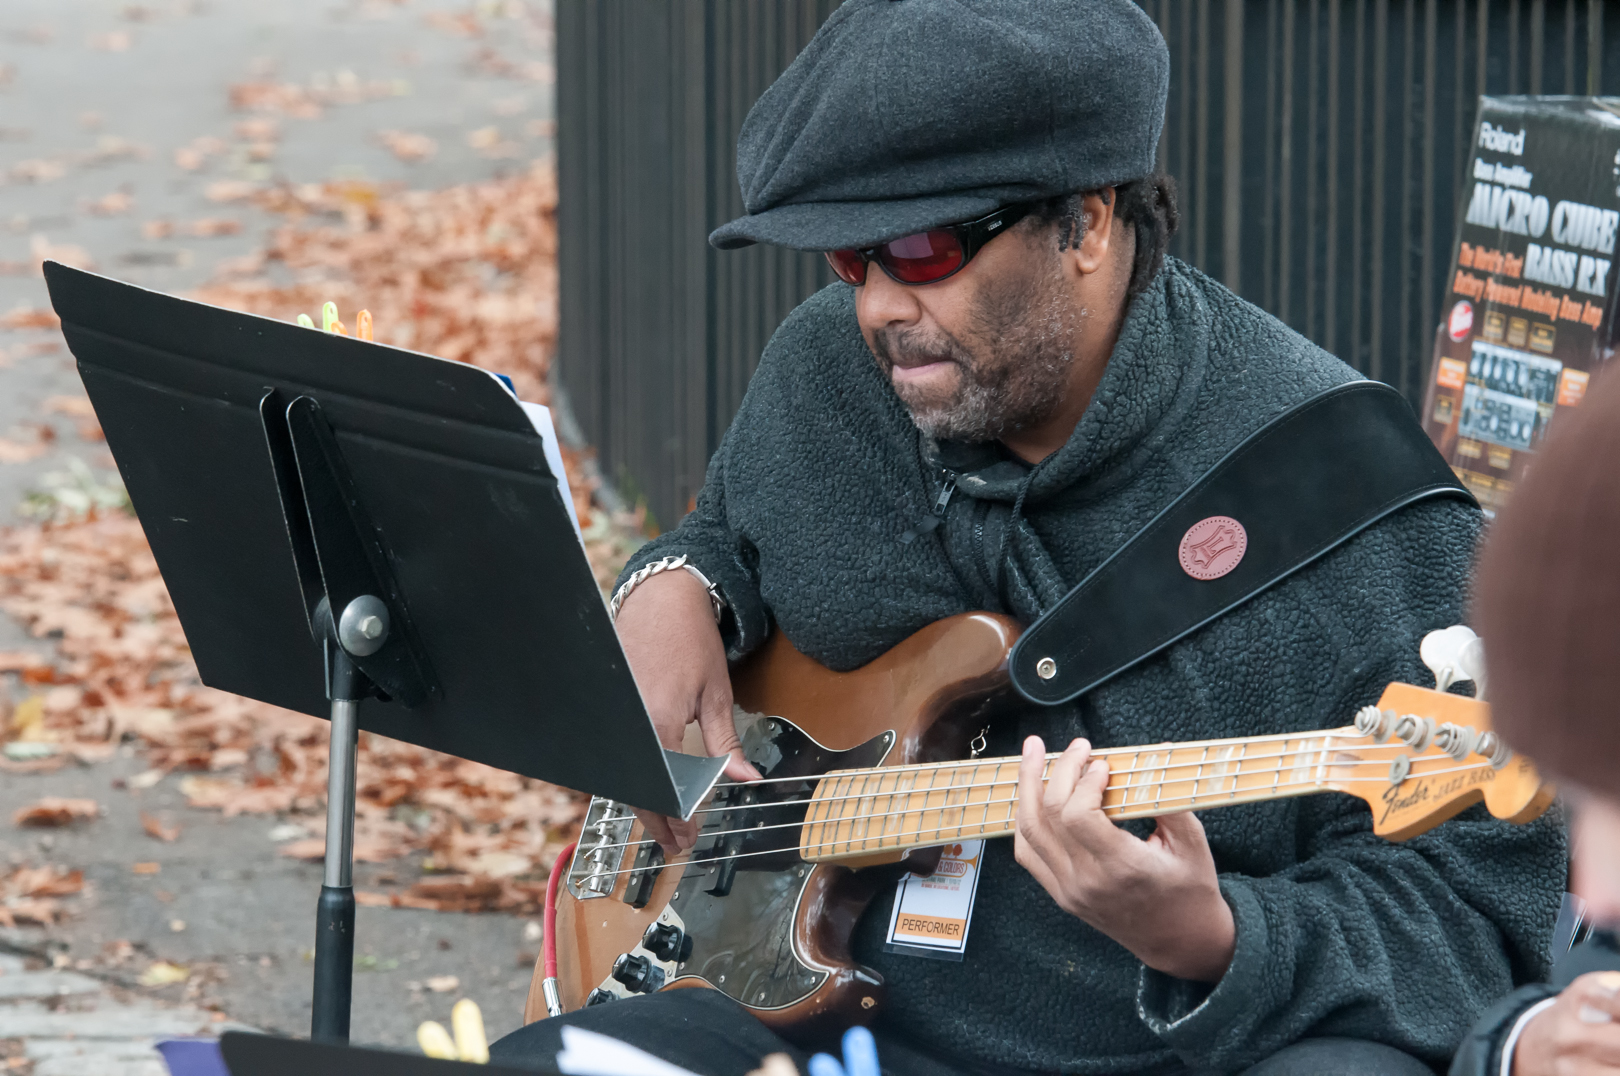 Fred Cash with Marika Hughes & Bottom Heavy at Jazz and Colors in Central Park